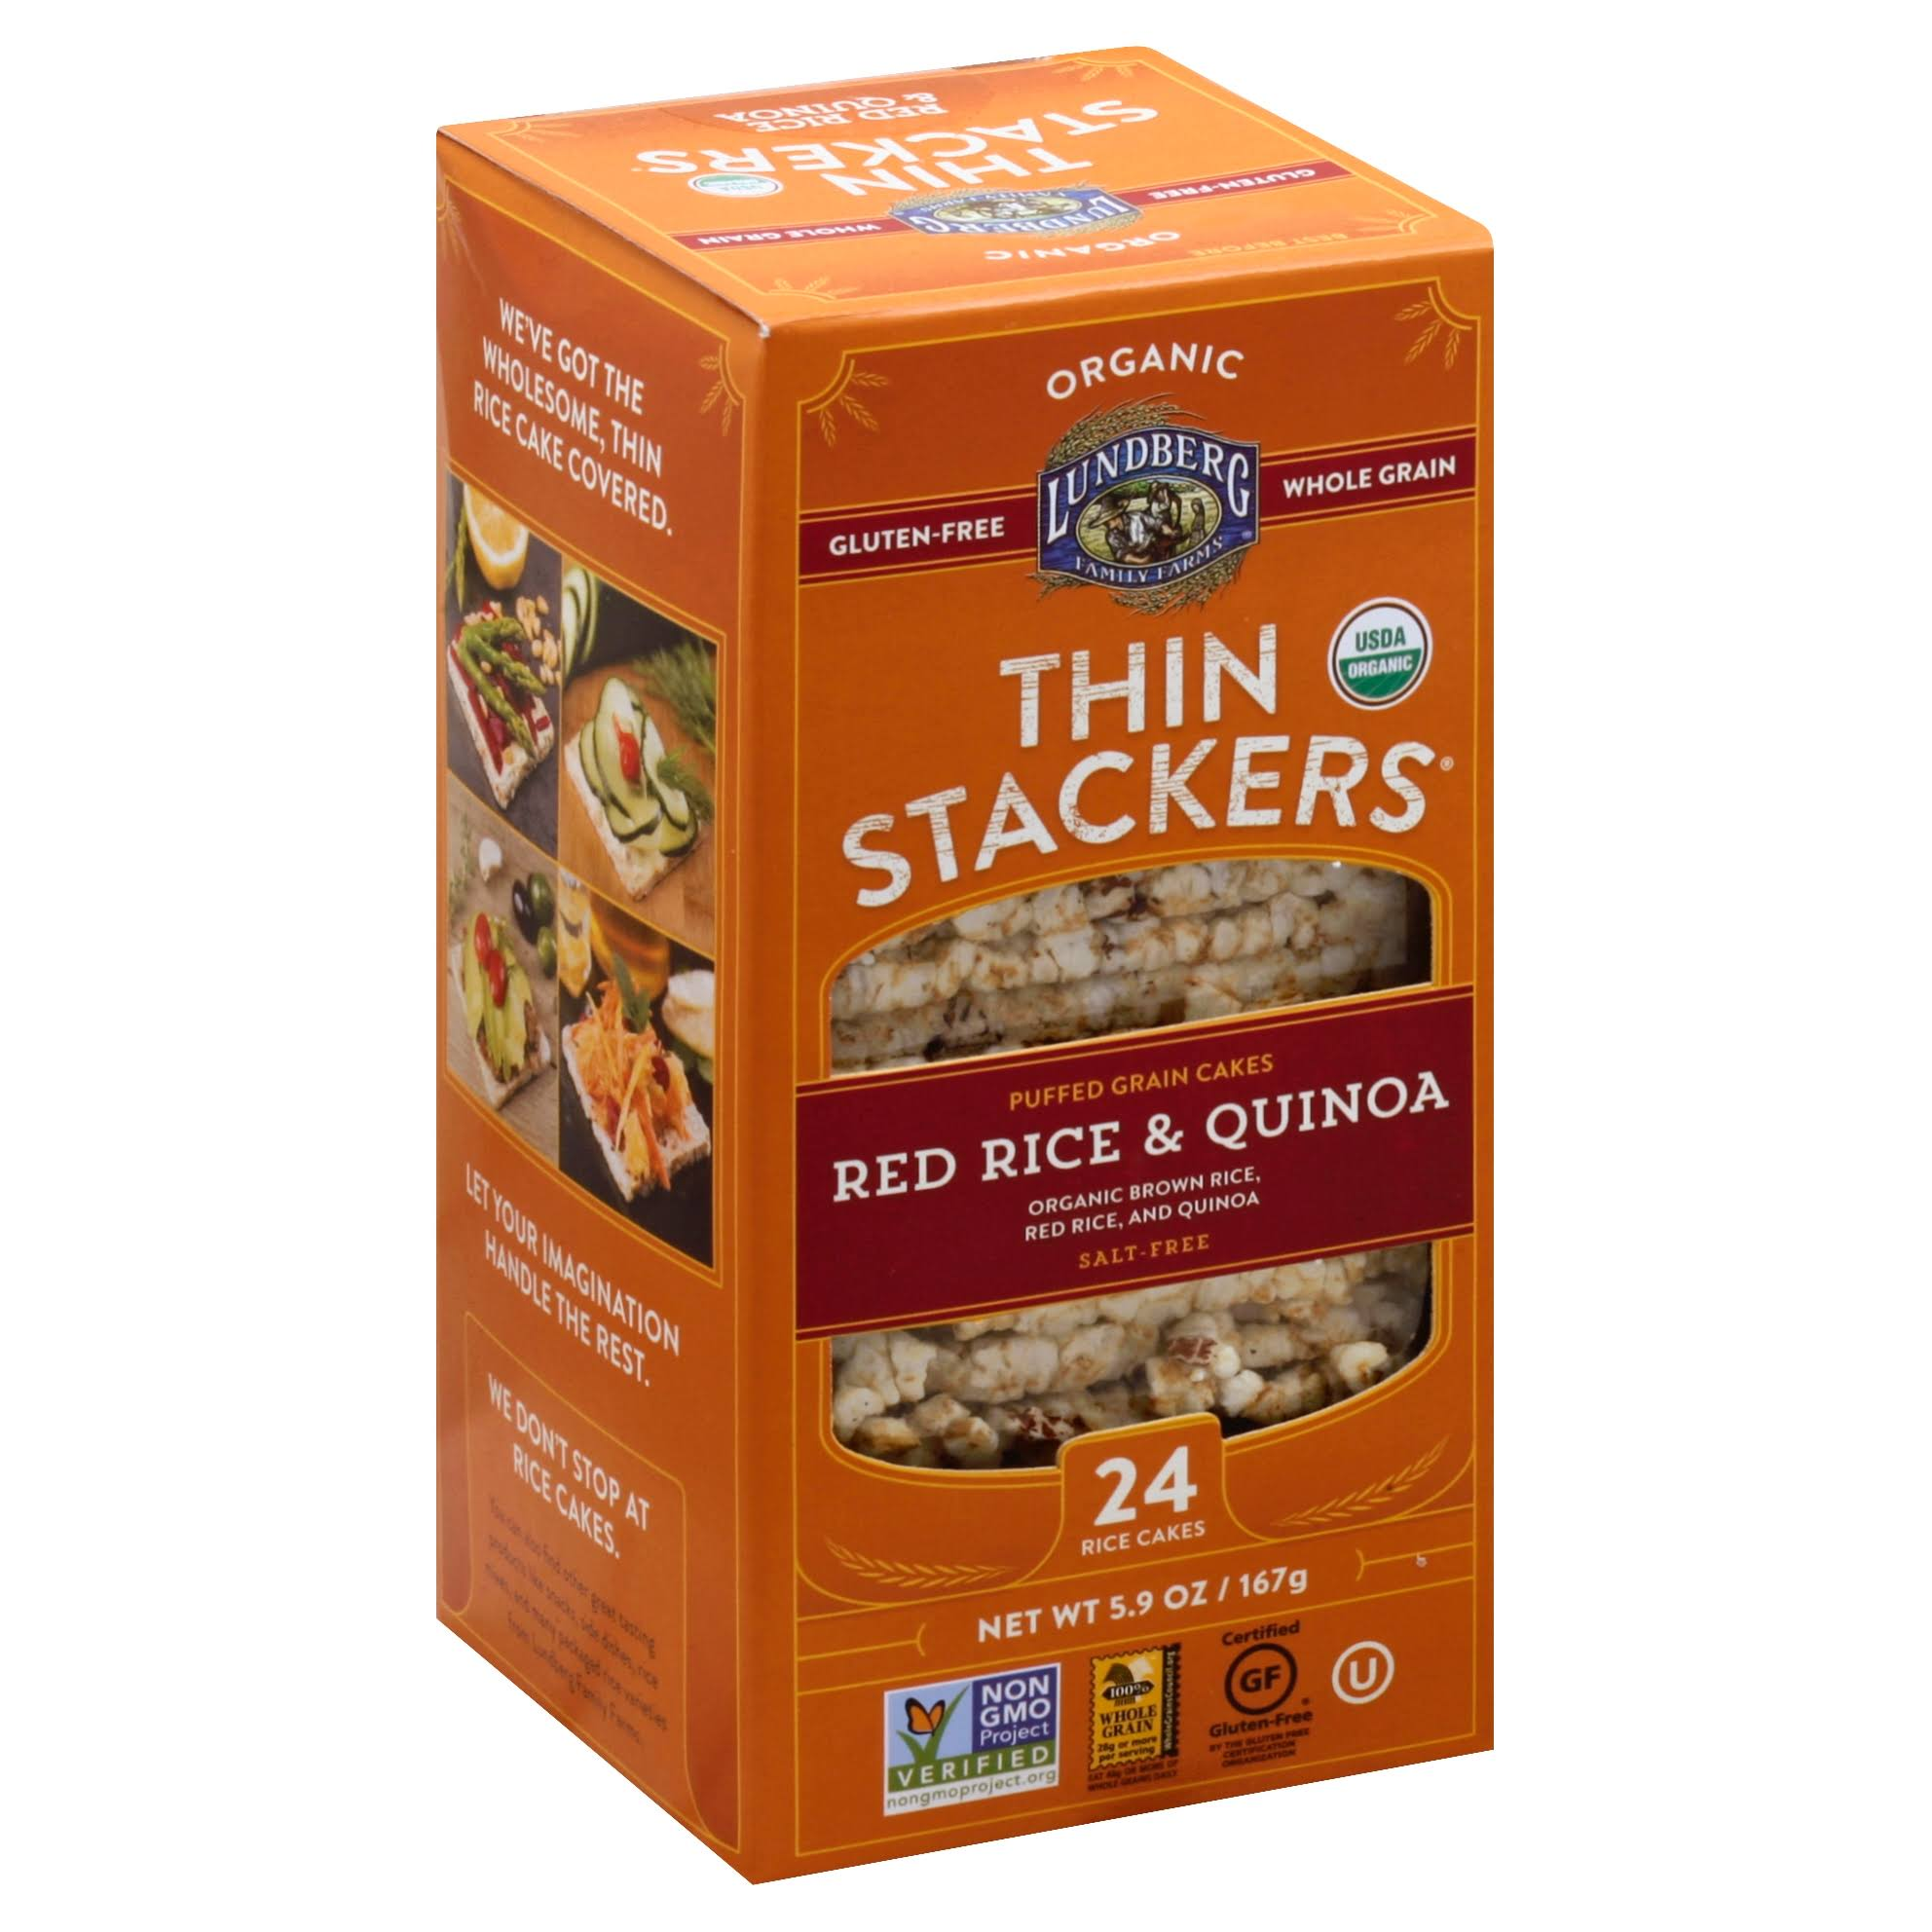 Lundberg Thin Stackers Rice Cakes, Organic, Salt-Free, Red Rice & Quinoa - 24 rice cakes, 5.9 oz